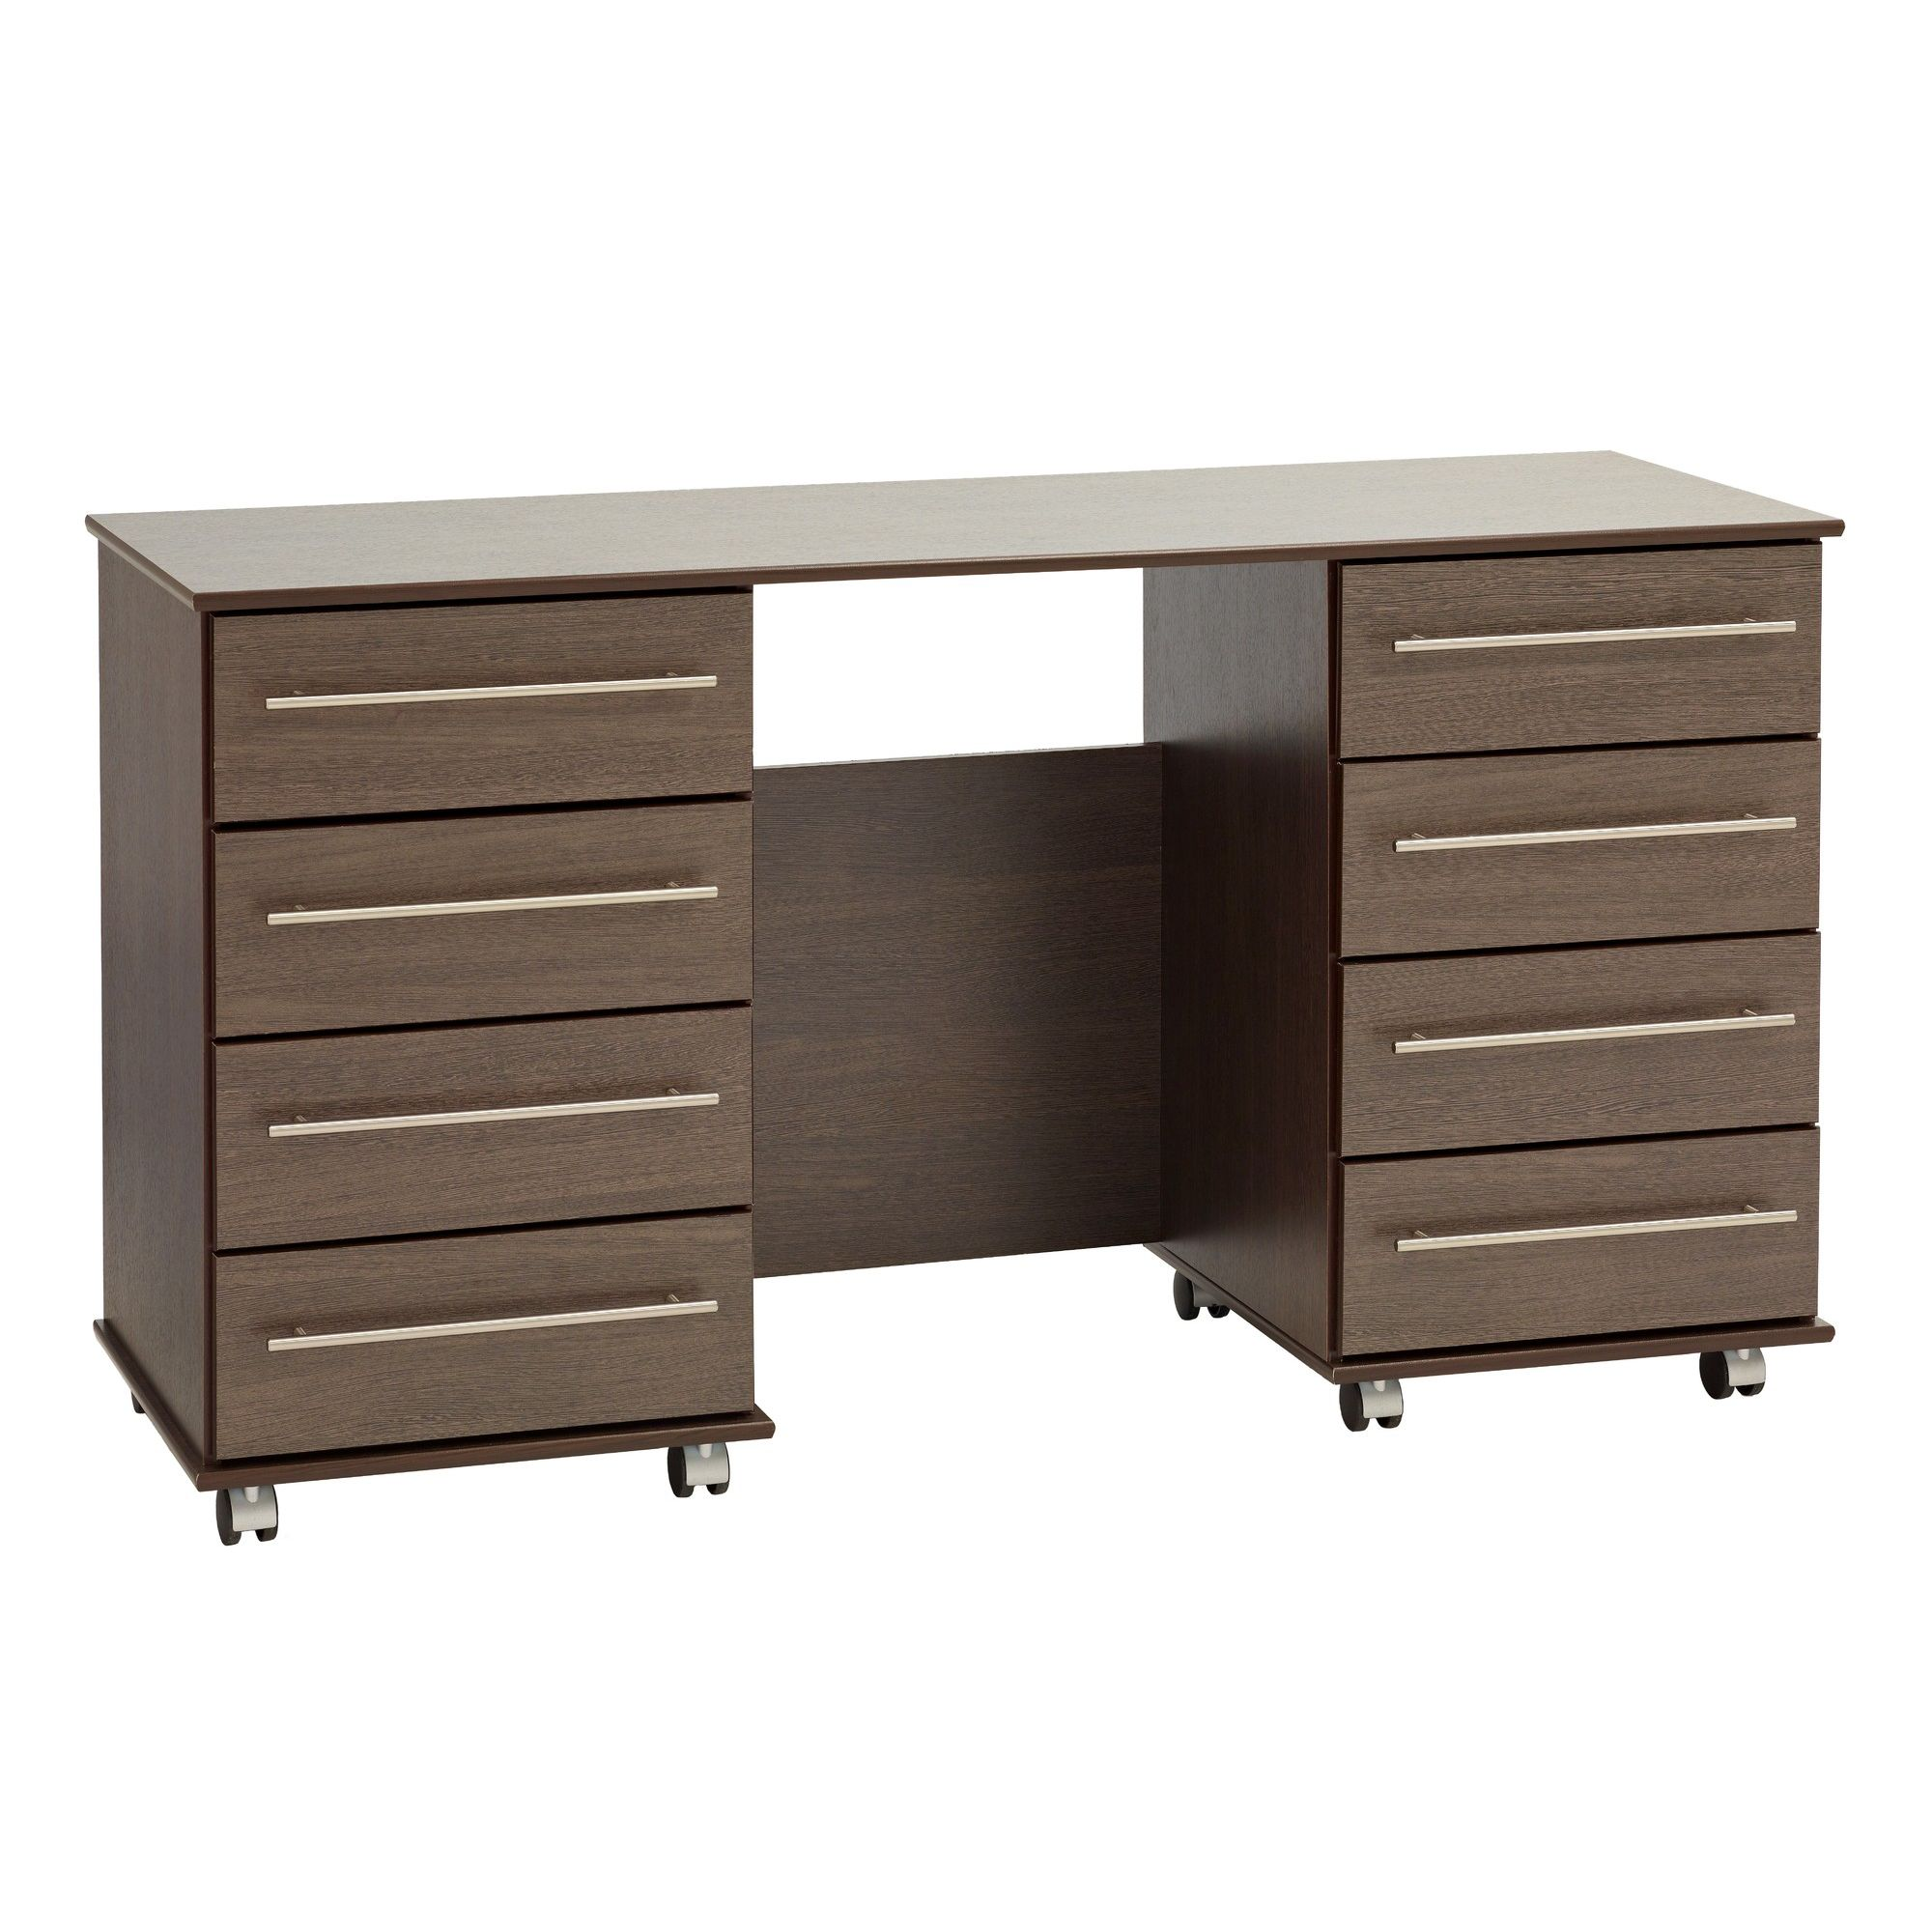 Ideal Furniture New York Double Dressing Table - American Walnut at Tesco Direct